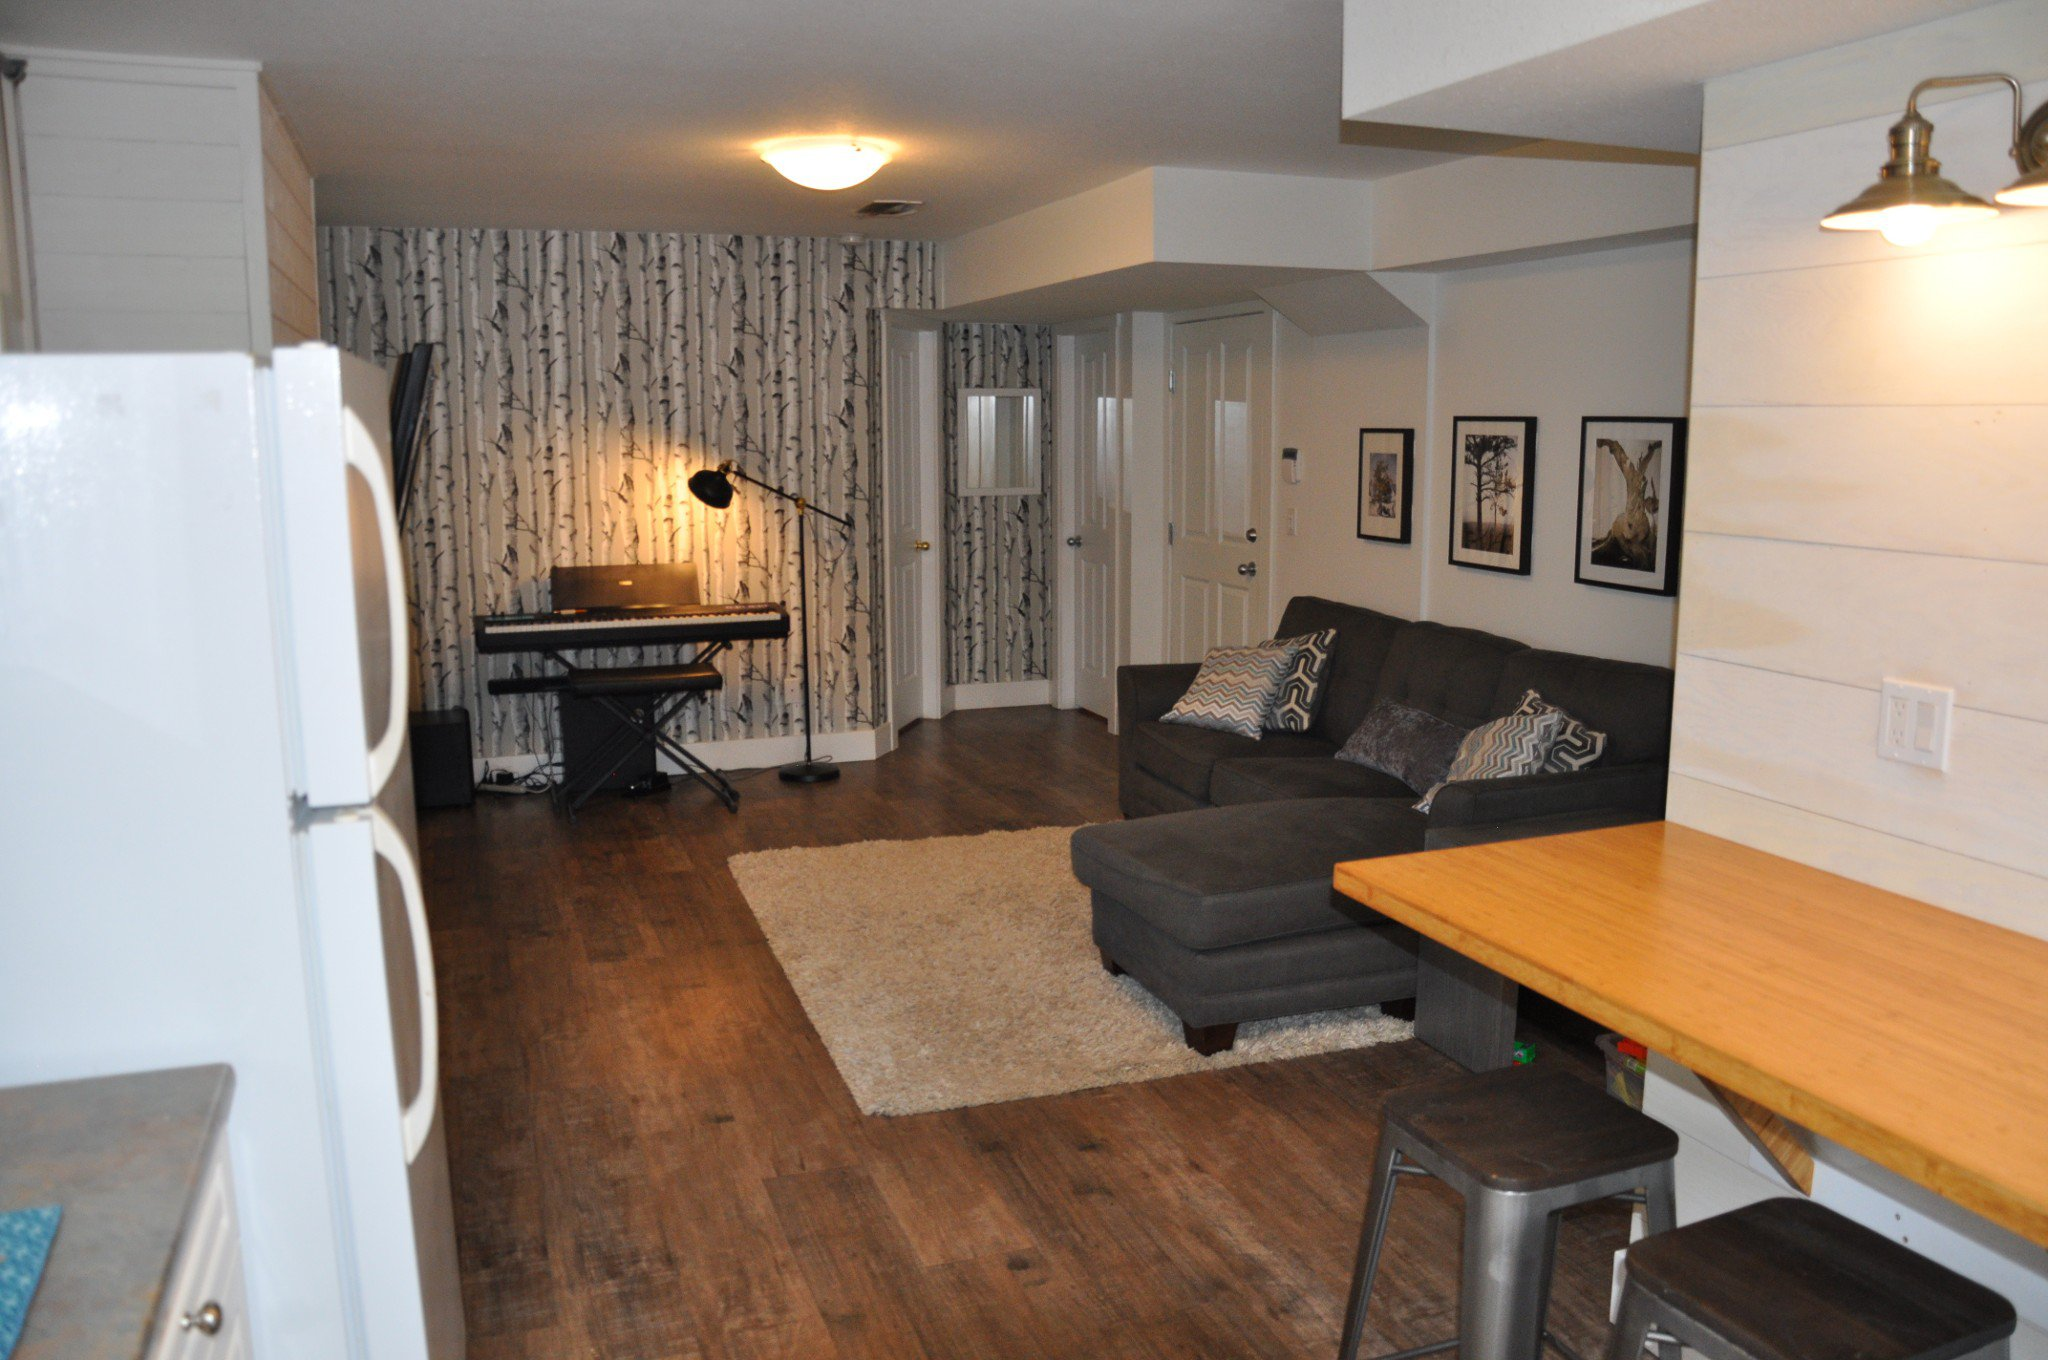 Photo 17: Photos: 4076 Channel St. in Abbotsford: Abbotsford East House for rent